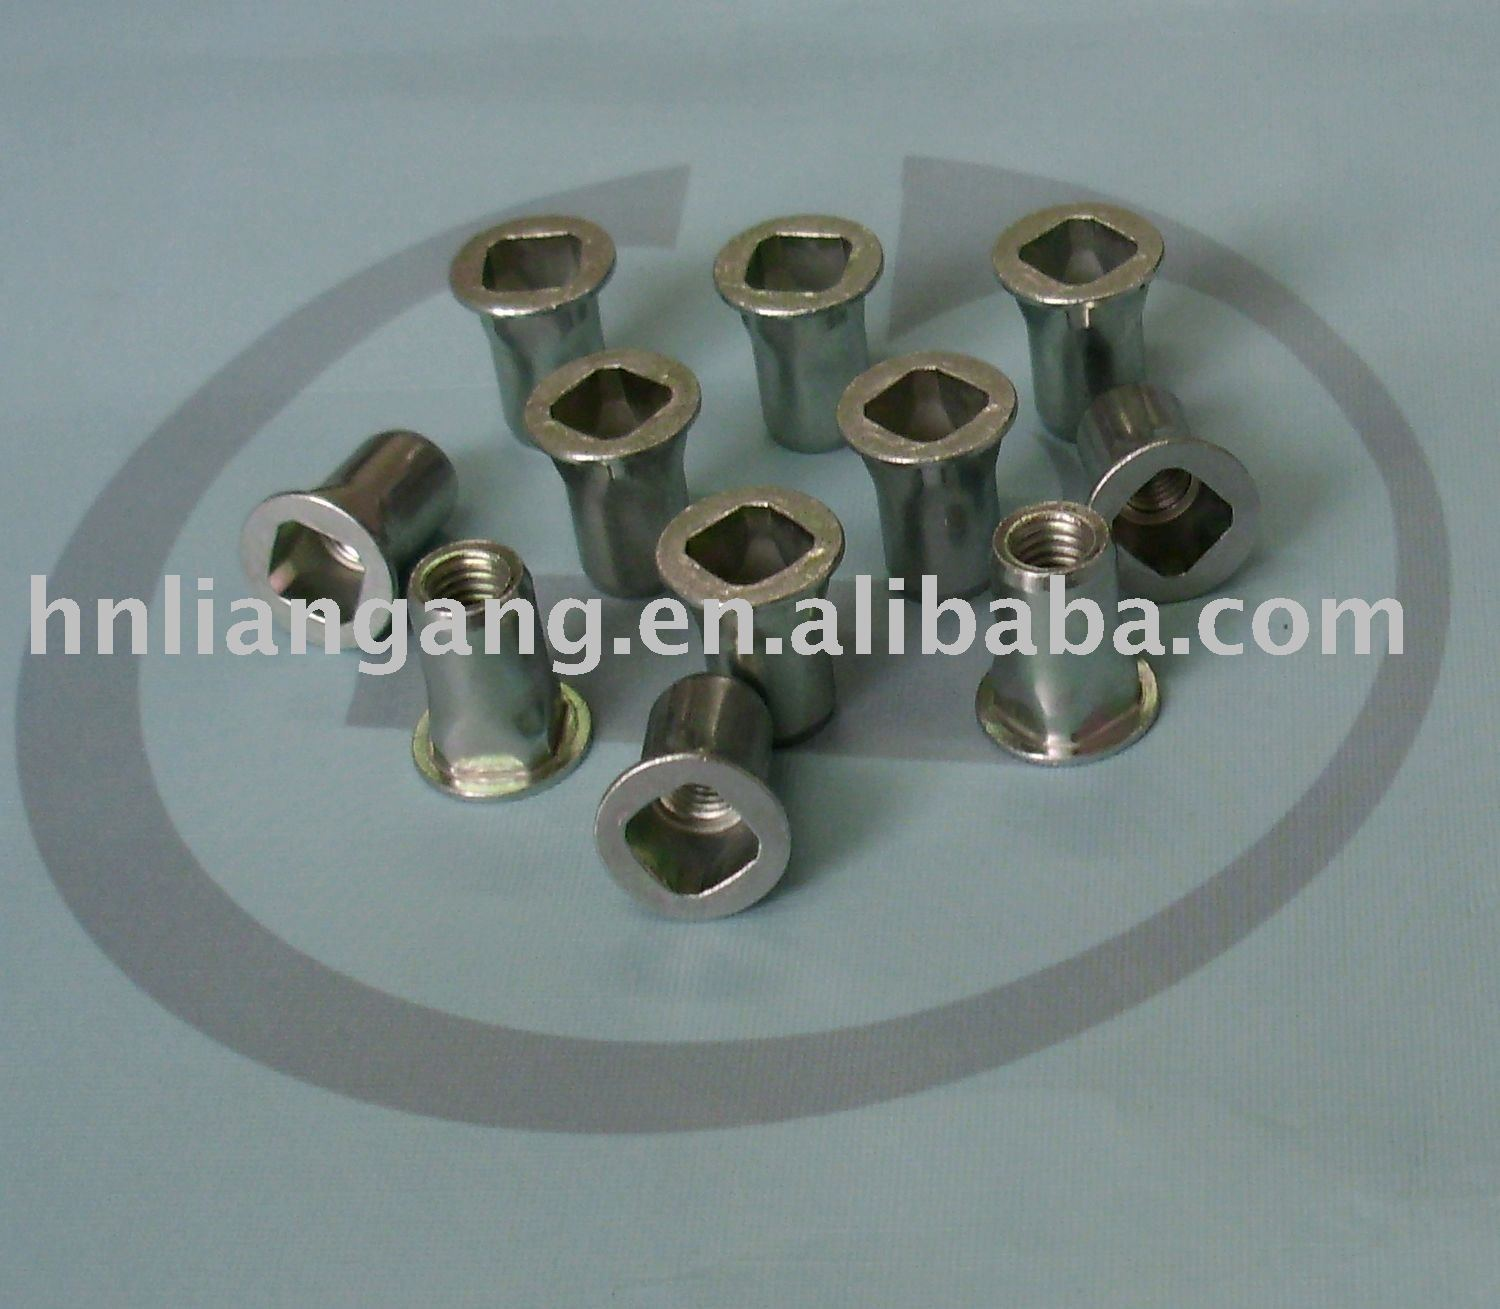 standard sheet j bag per hardware nuts r blind and qty index nut metric blinds t for hobby metal